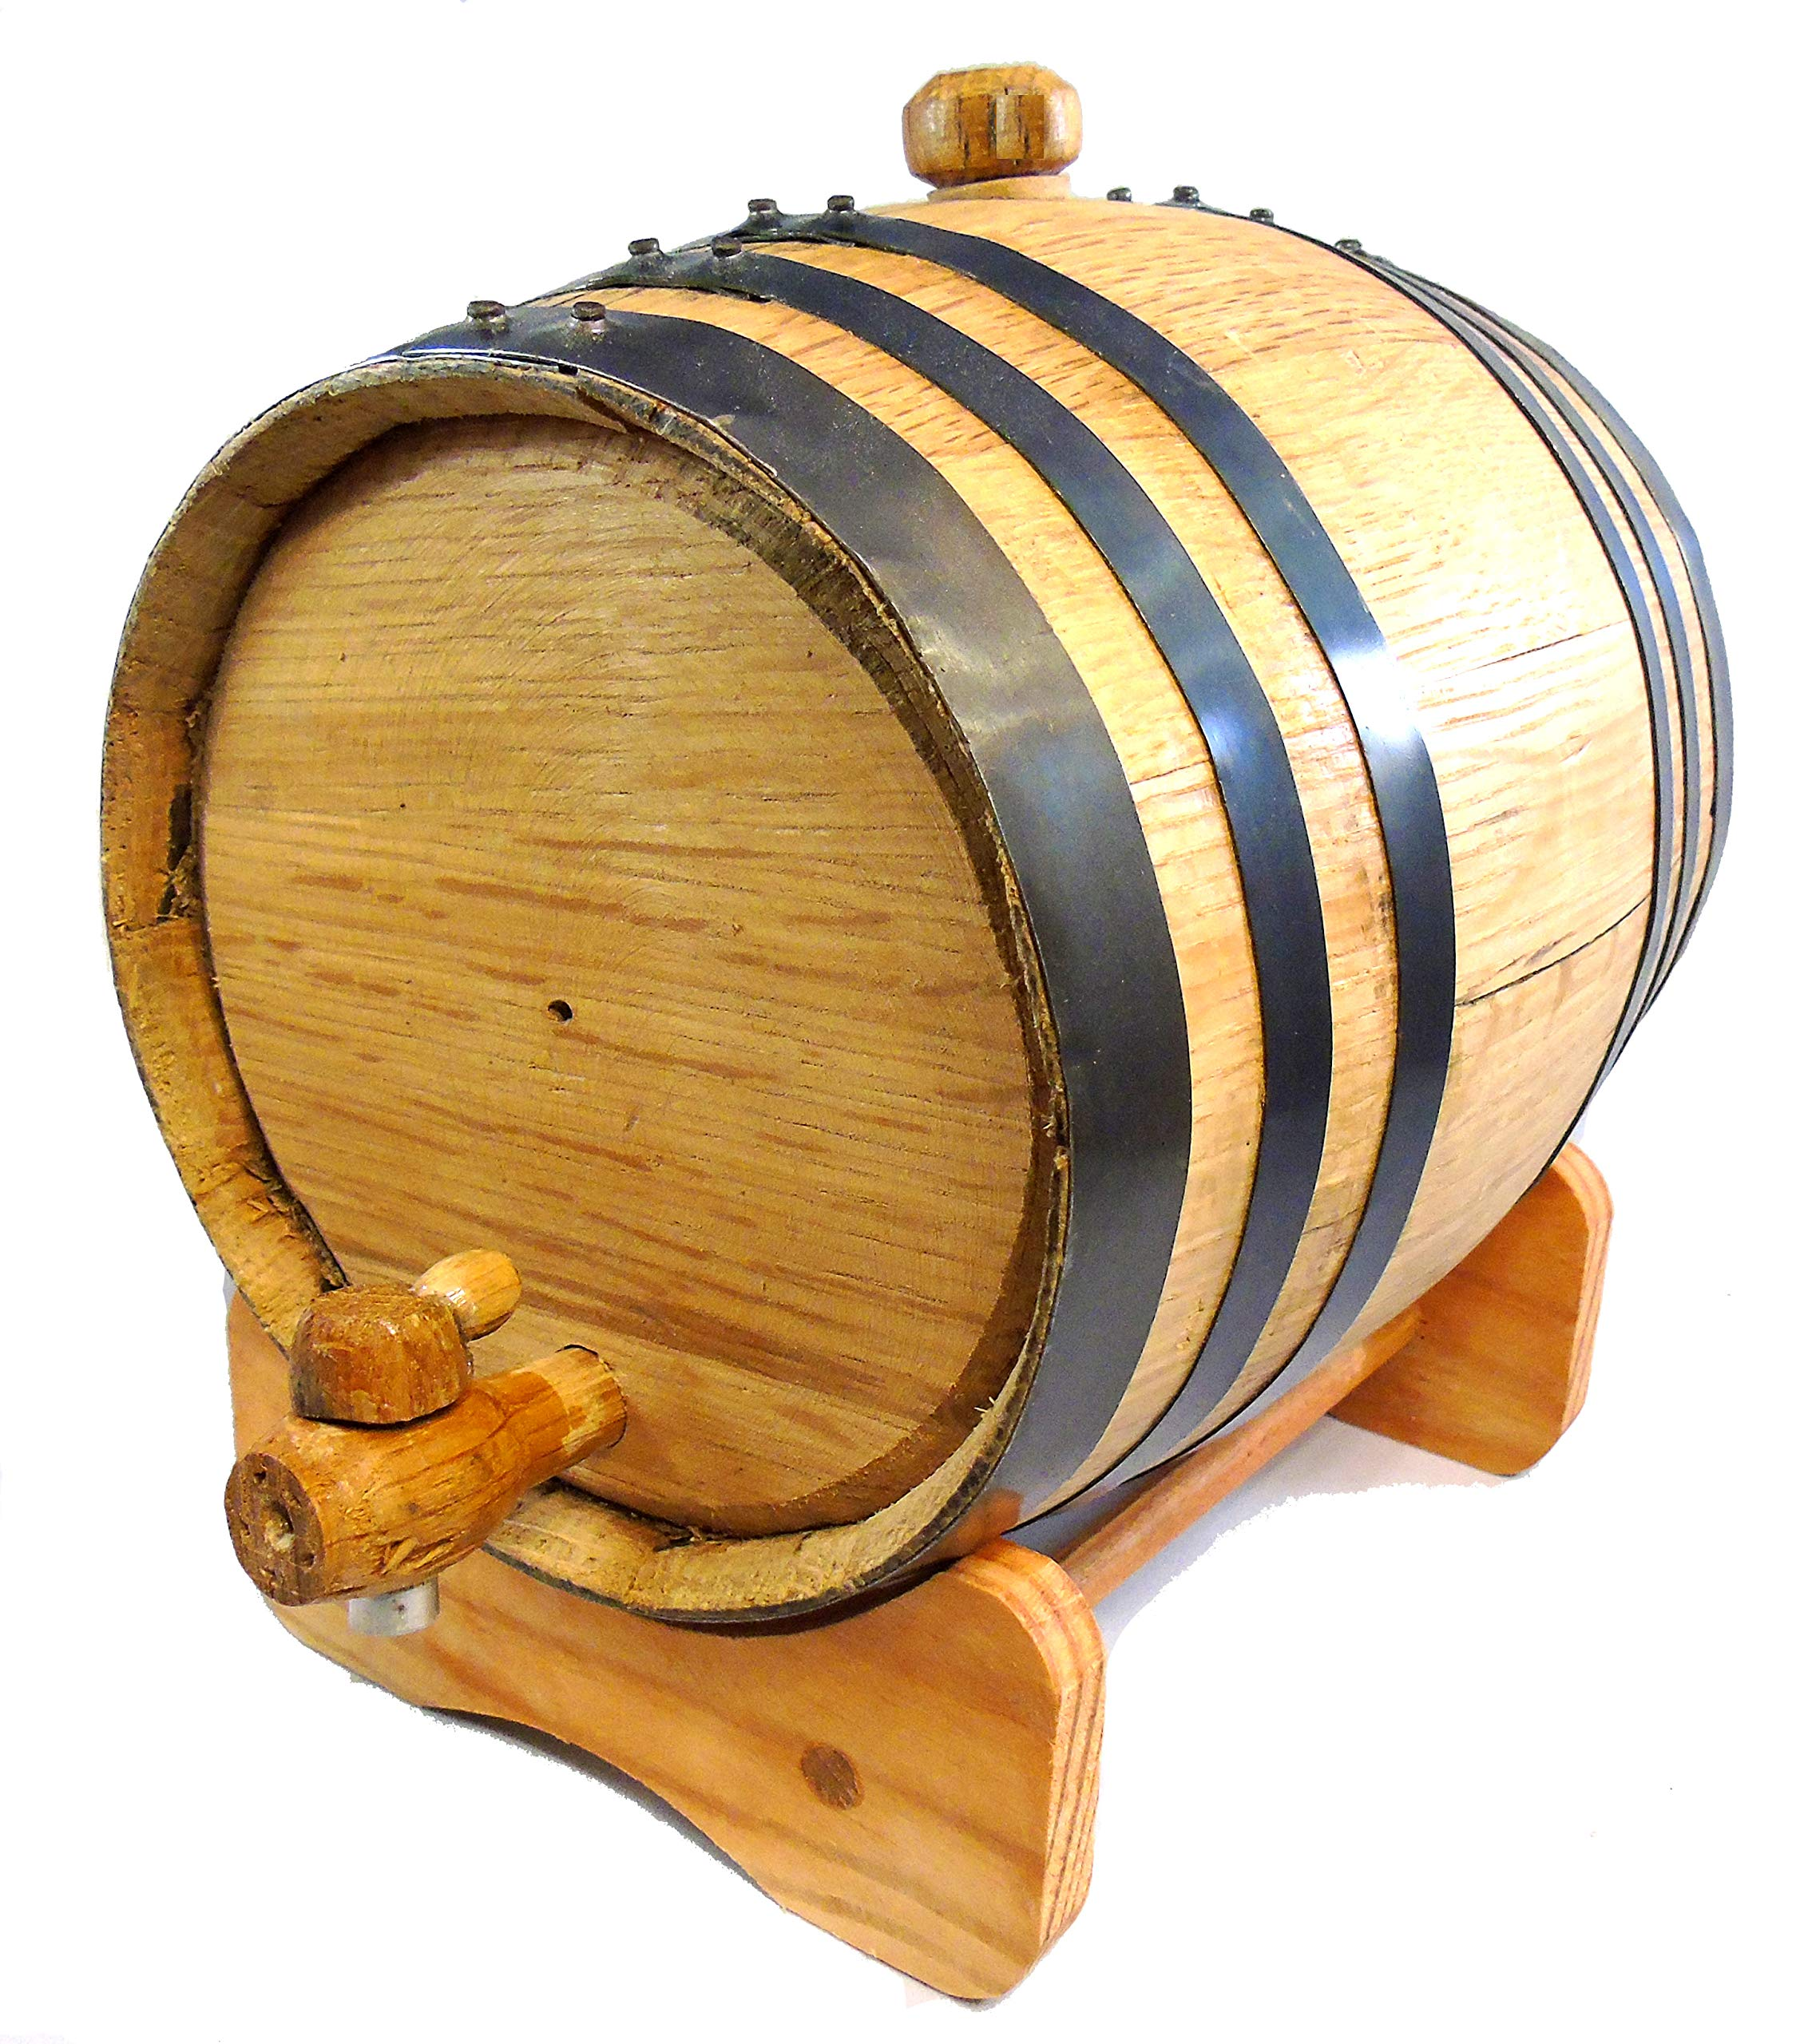 Premium Charred American Oak Aging Barrel - No Engraving (2 Liter)